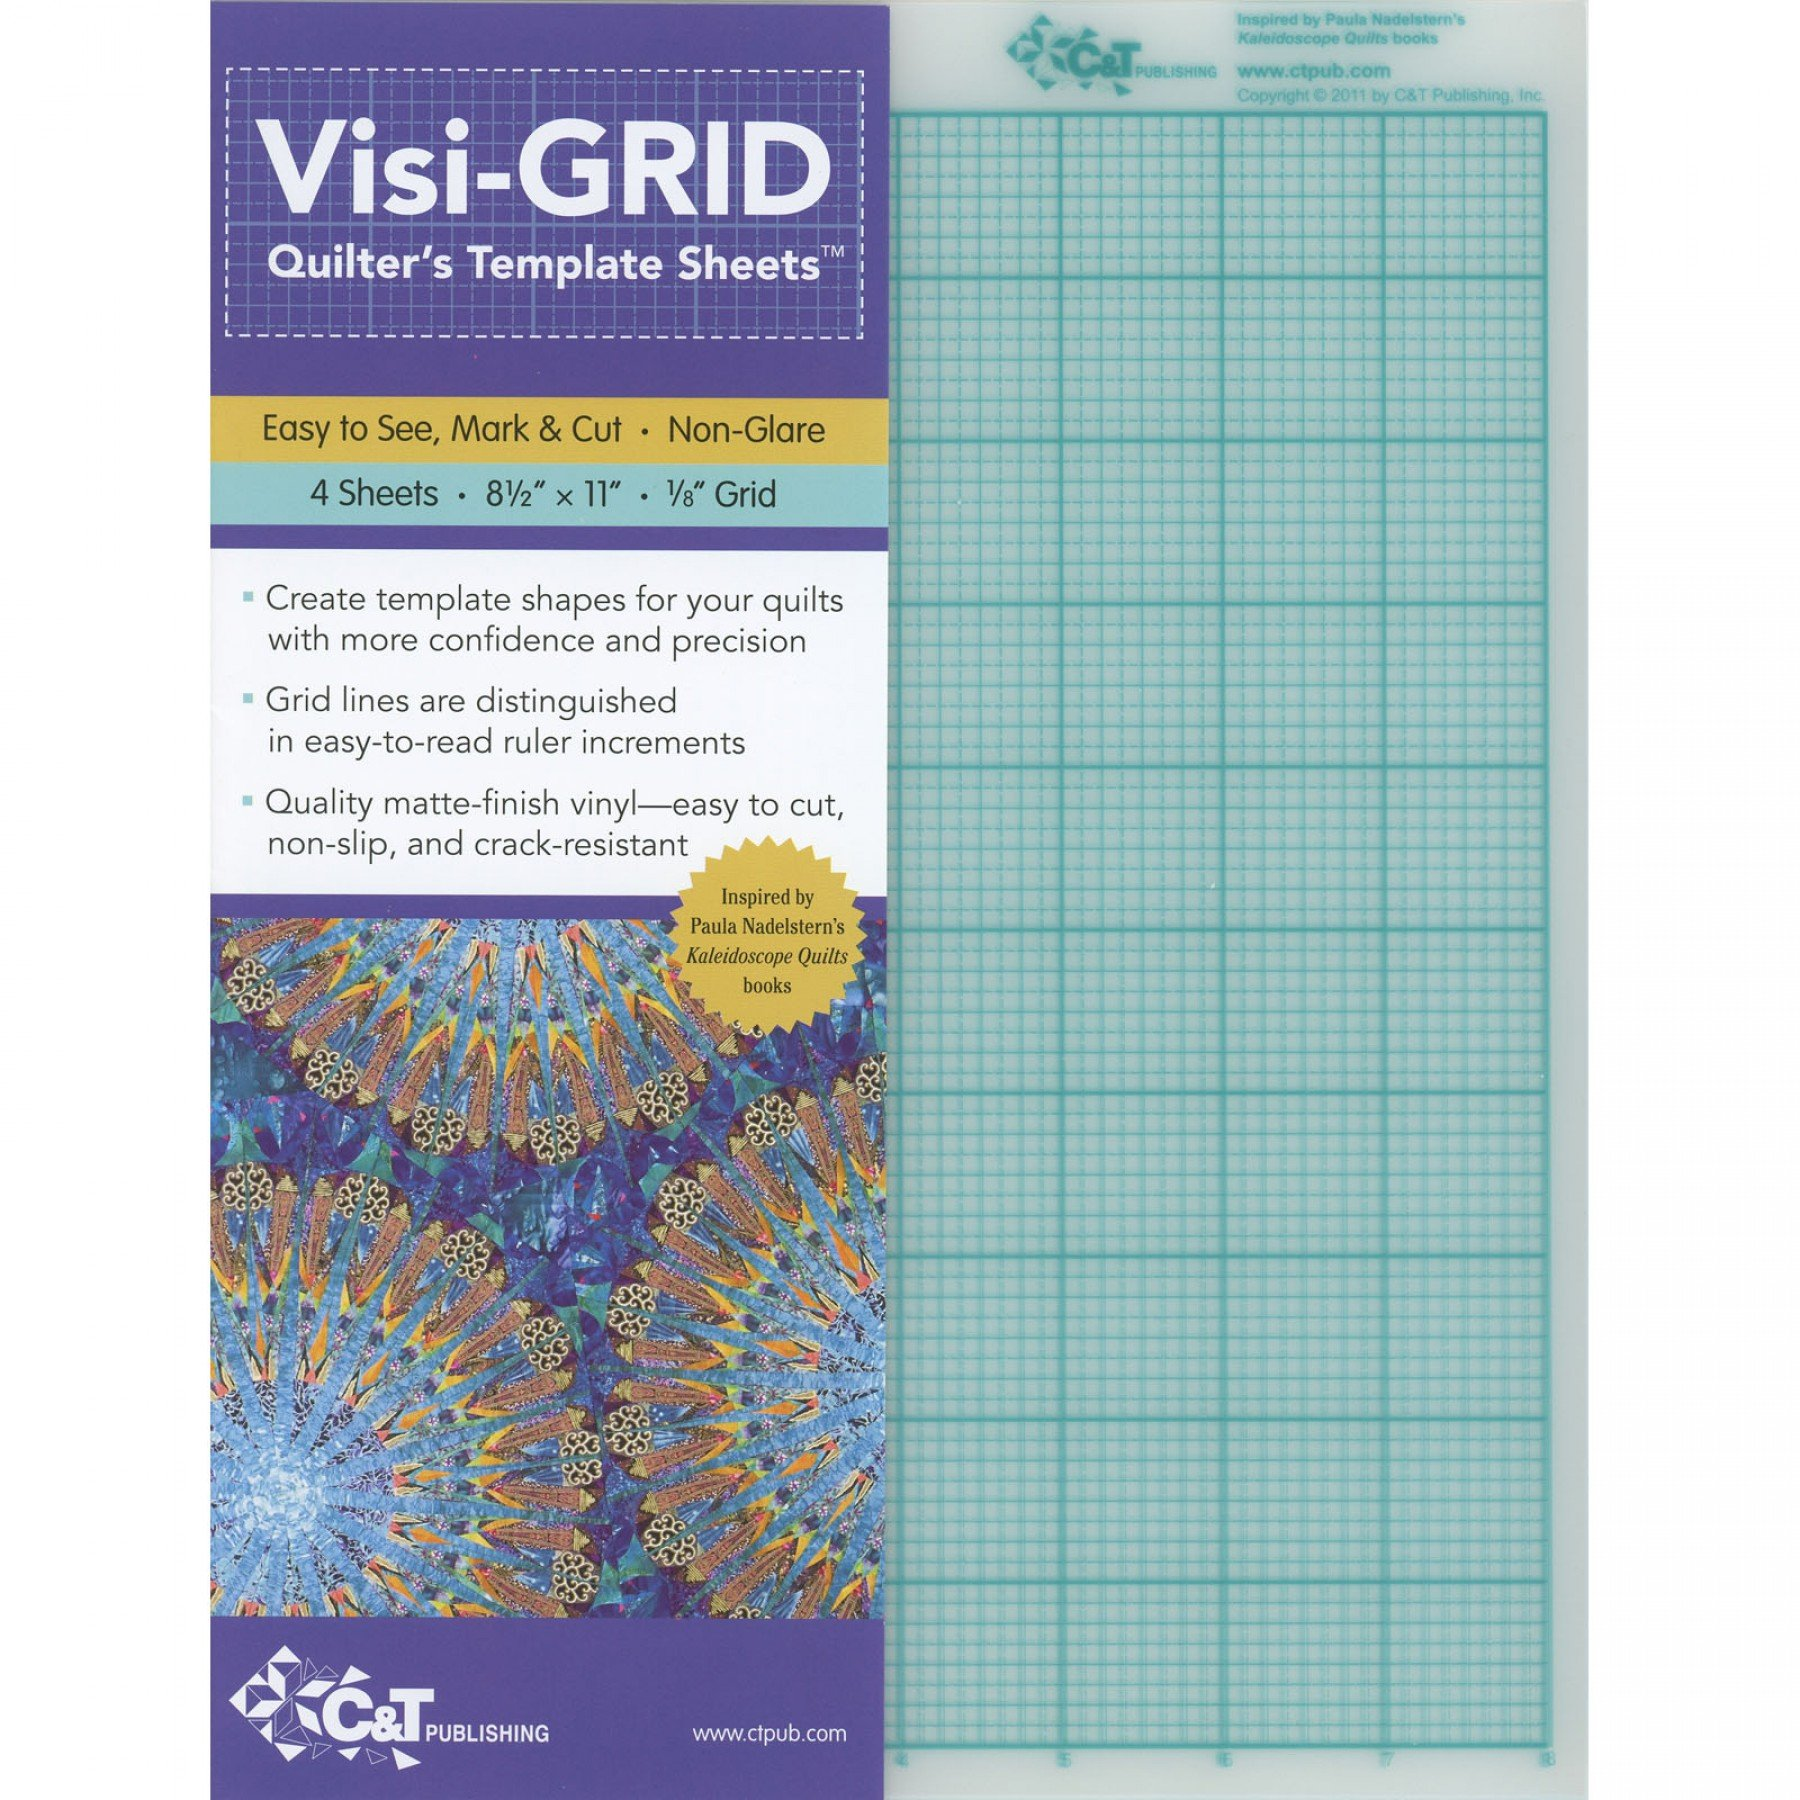 Visi-GRID Quilter s Template Sheets EE Schenck Co.